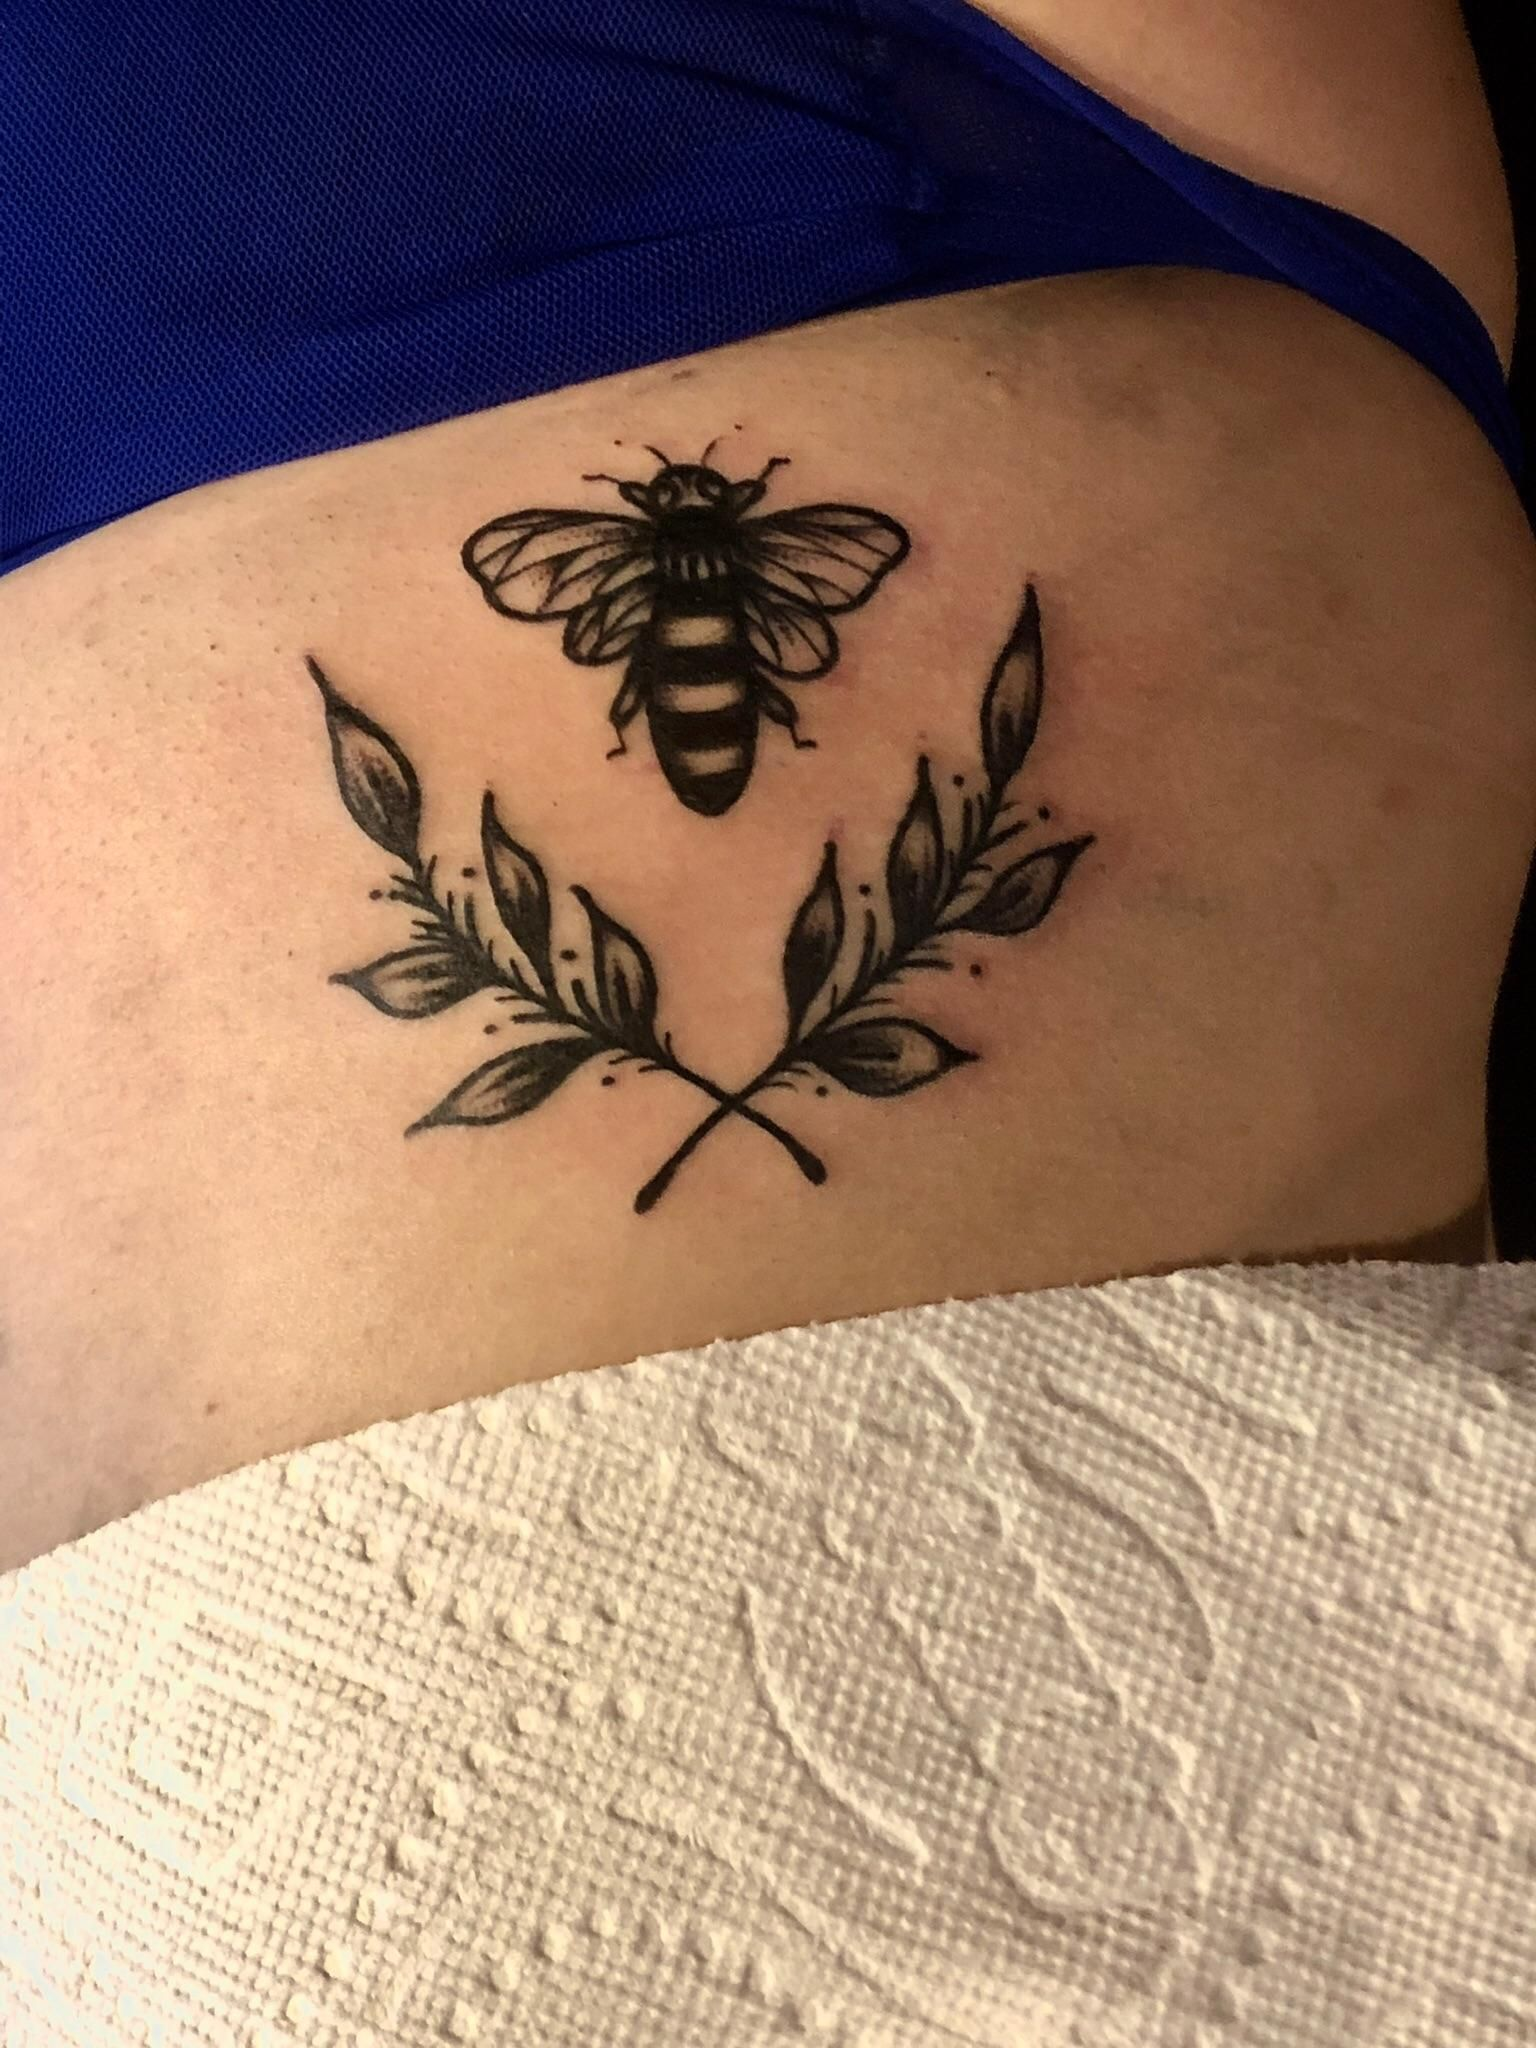 A bee for my best friend she helped me through so much